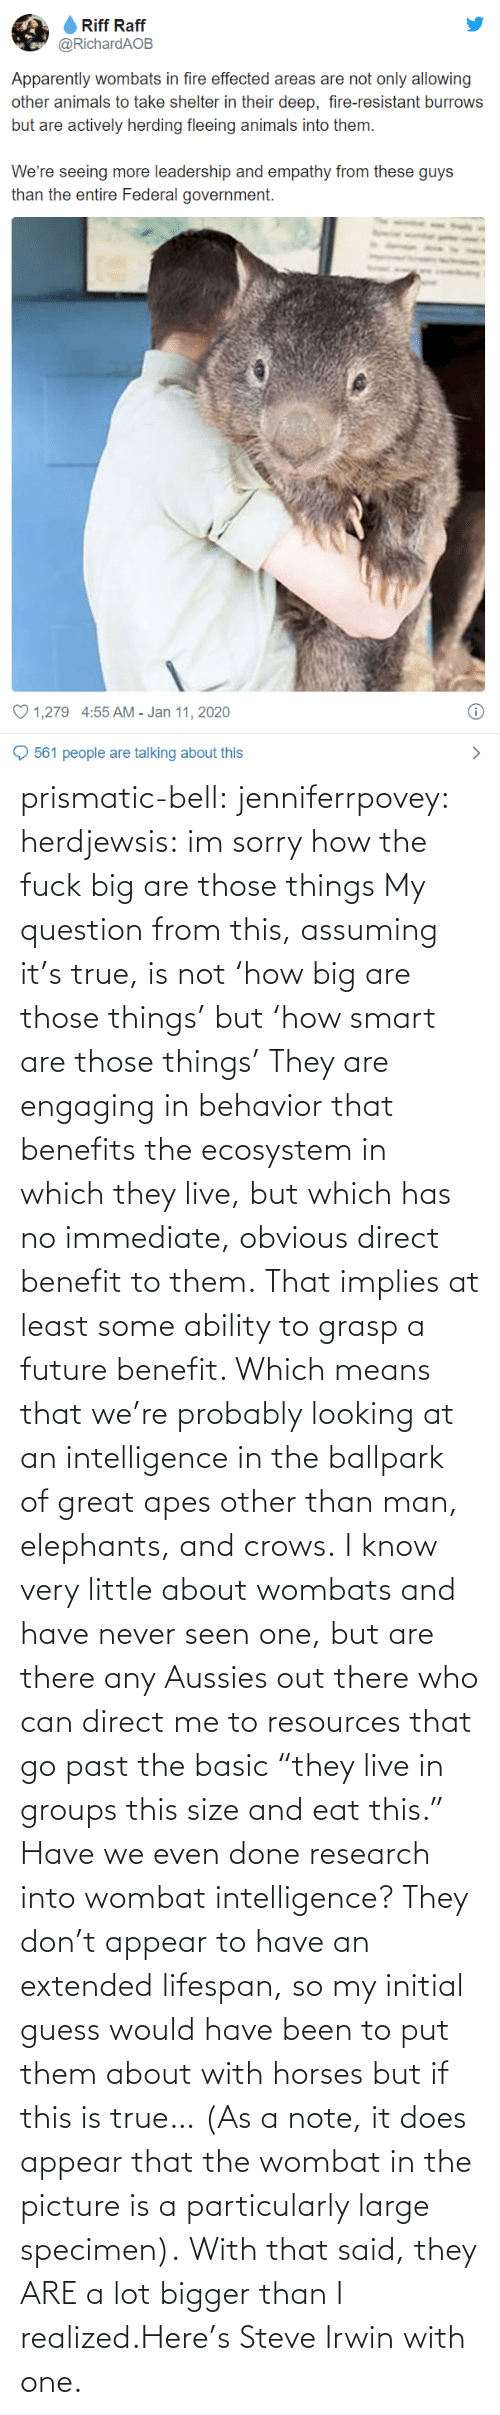 "steve: prismatic-bell:  jenniferrpovey: herdjewsis: im sorry how the fuck big are those things My question from this, assuming it's true, is not 'how big are those things' but 'how smart are those things' They are engaging in behavior that benefits the ecosystem in which they live, but which has no immediate, obvious direct benefit to them. That implies at least some ability to grasp a future benefit. Which means that we're probably looking at an intelligence in the ballpark of great apes other than man, elephants, and crows. I know very little about wombats and have never seen one, but are there any Aussies out there who can direct me to resources that go past the basic ""they live in groups this size and eat this."" Have we even done research into wombat intelligence? They don't appear to have an extended lifespan, so my initial guess would have been to put them about with horses but if this is true… (As a note, it does appear that the wombat in the picture is a particularly large specimen).  With that said, they ARE a lot bigger than I realized.Here's Steve Irwin with one."